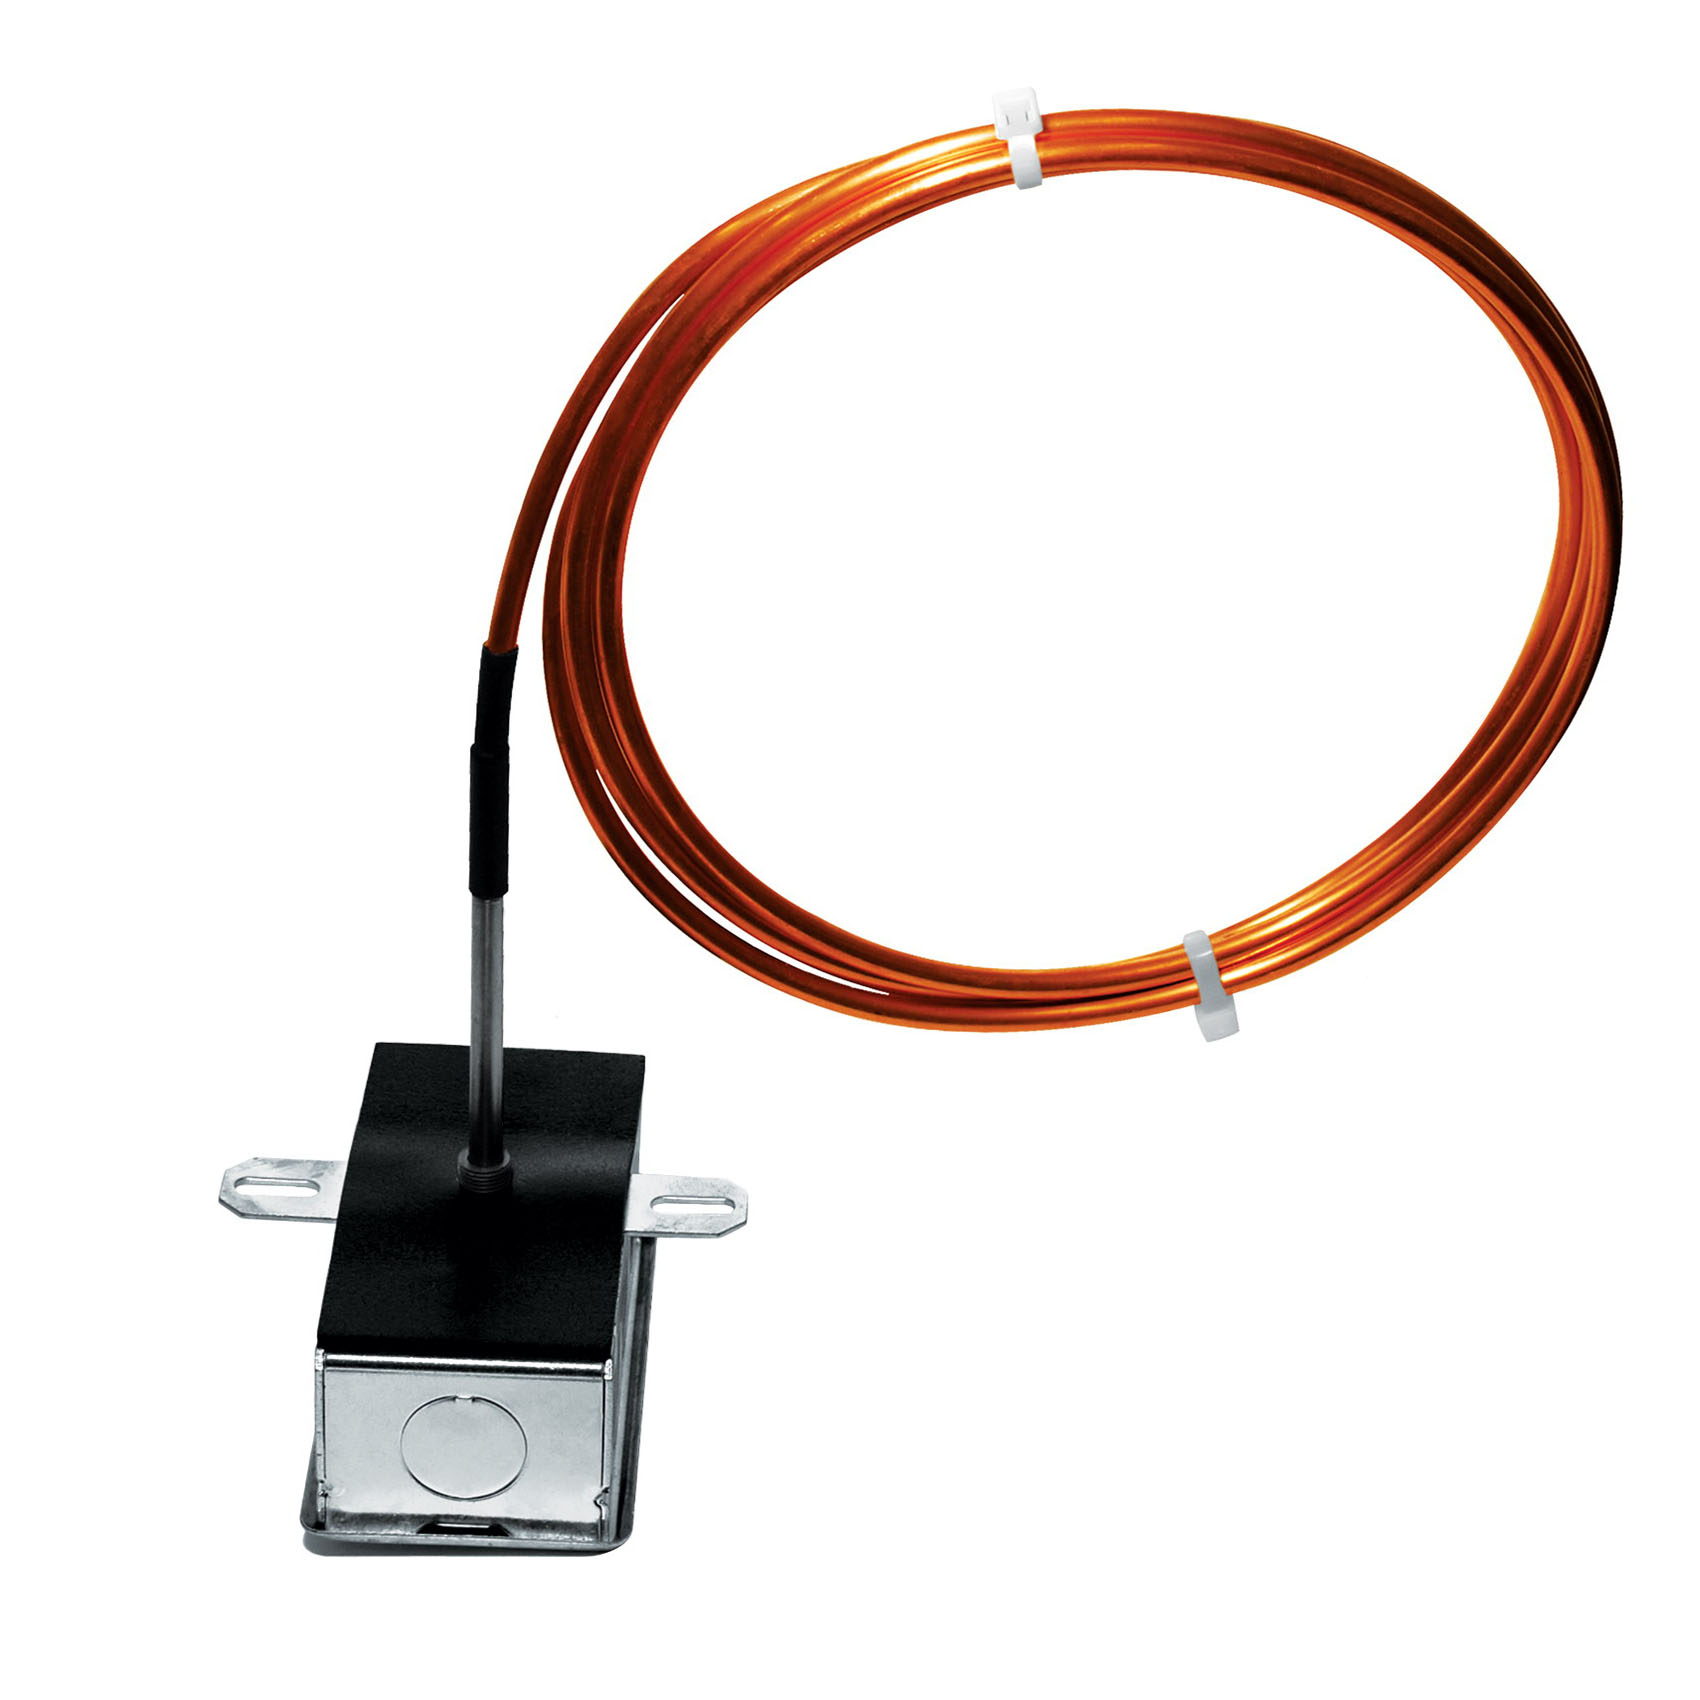 A/20K-A-8'-GD - 20K OHM @ 77 Thermistor